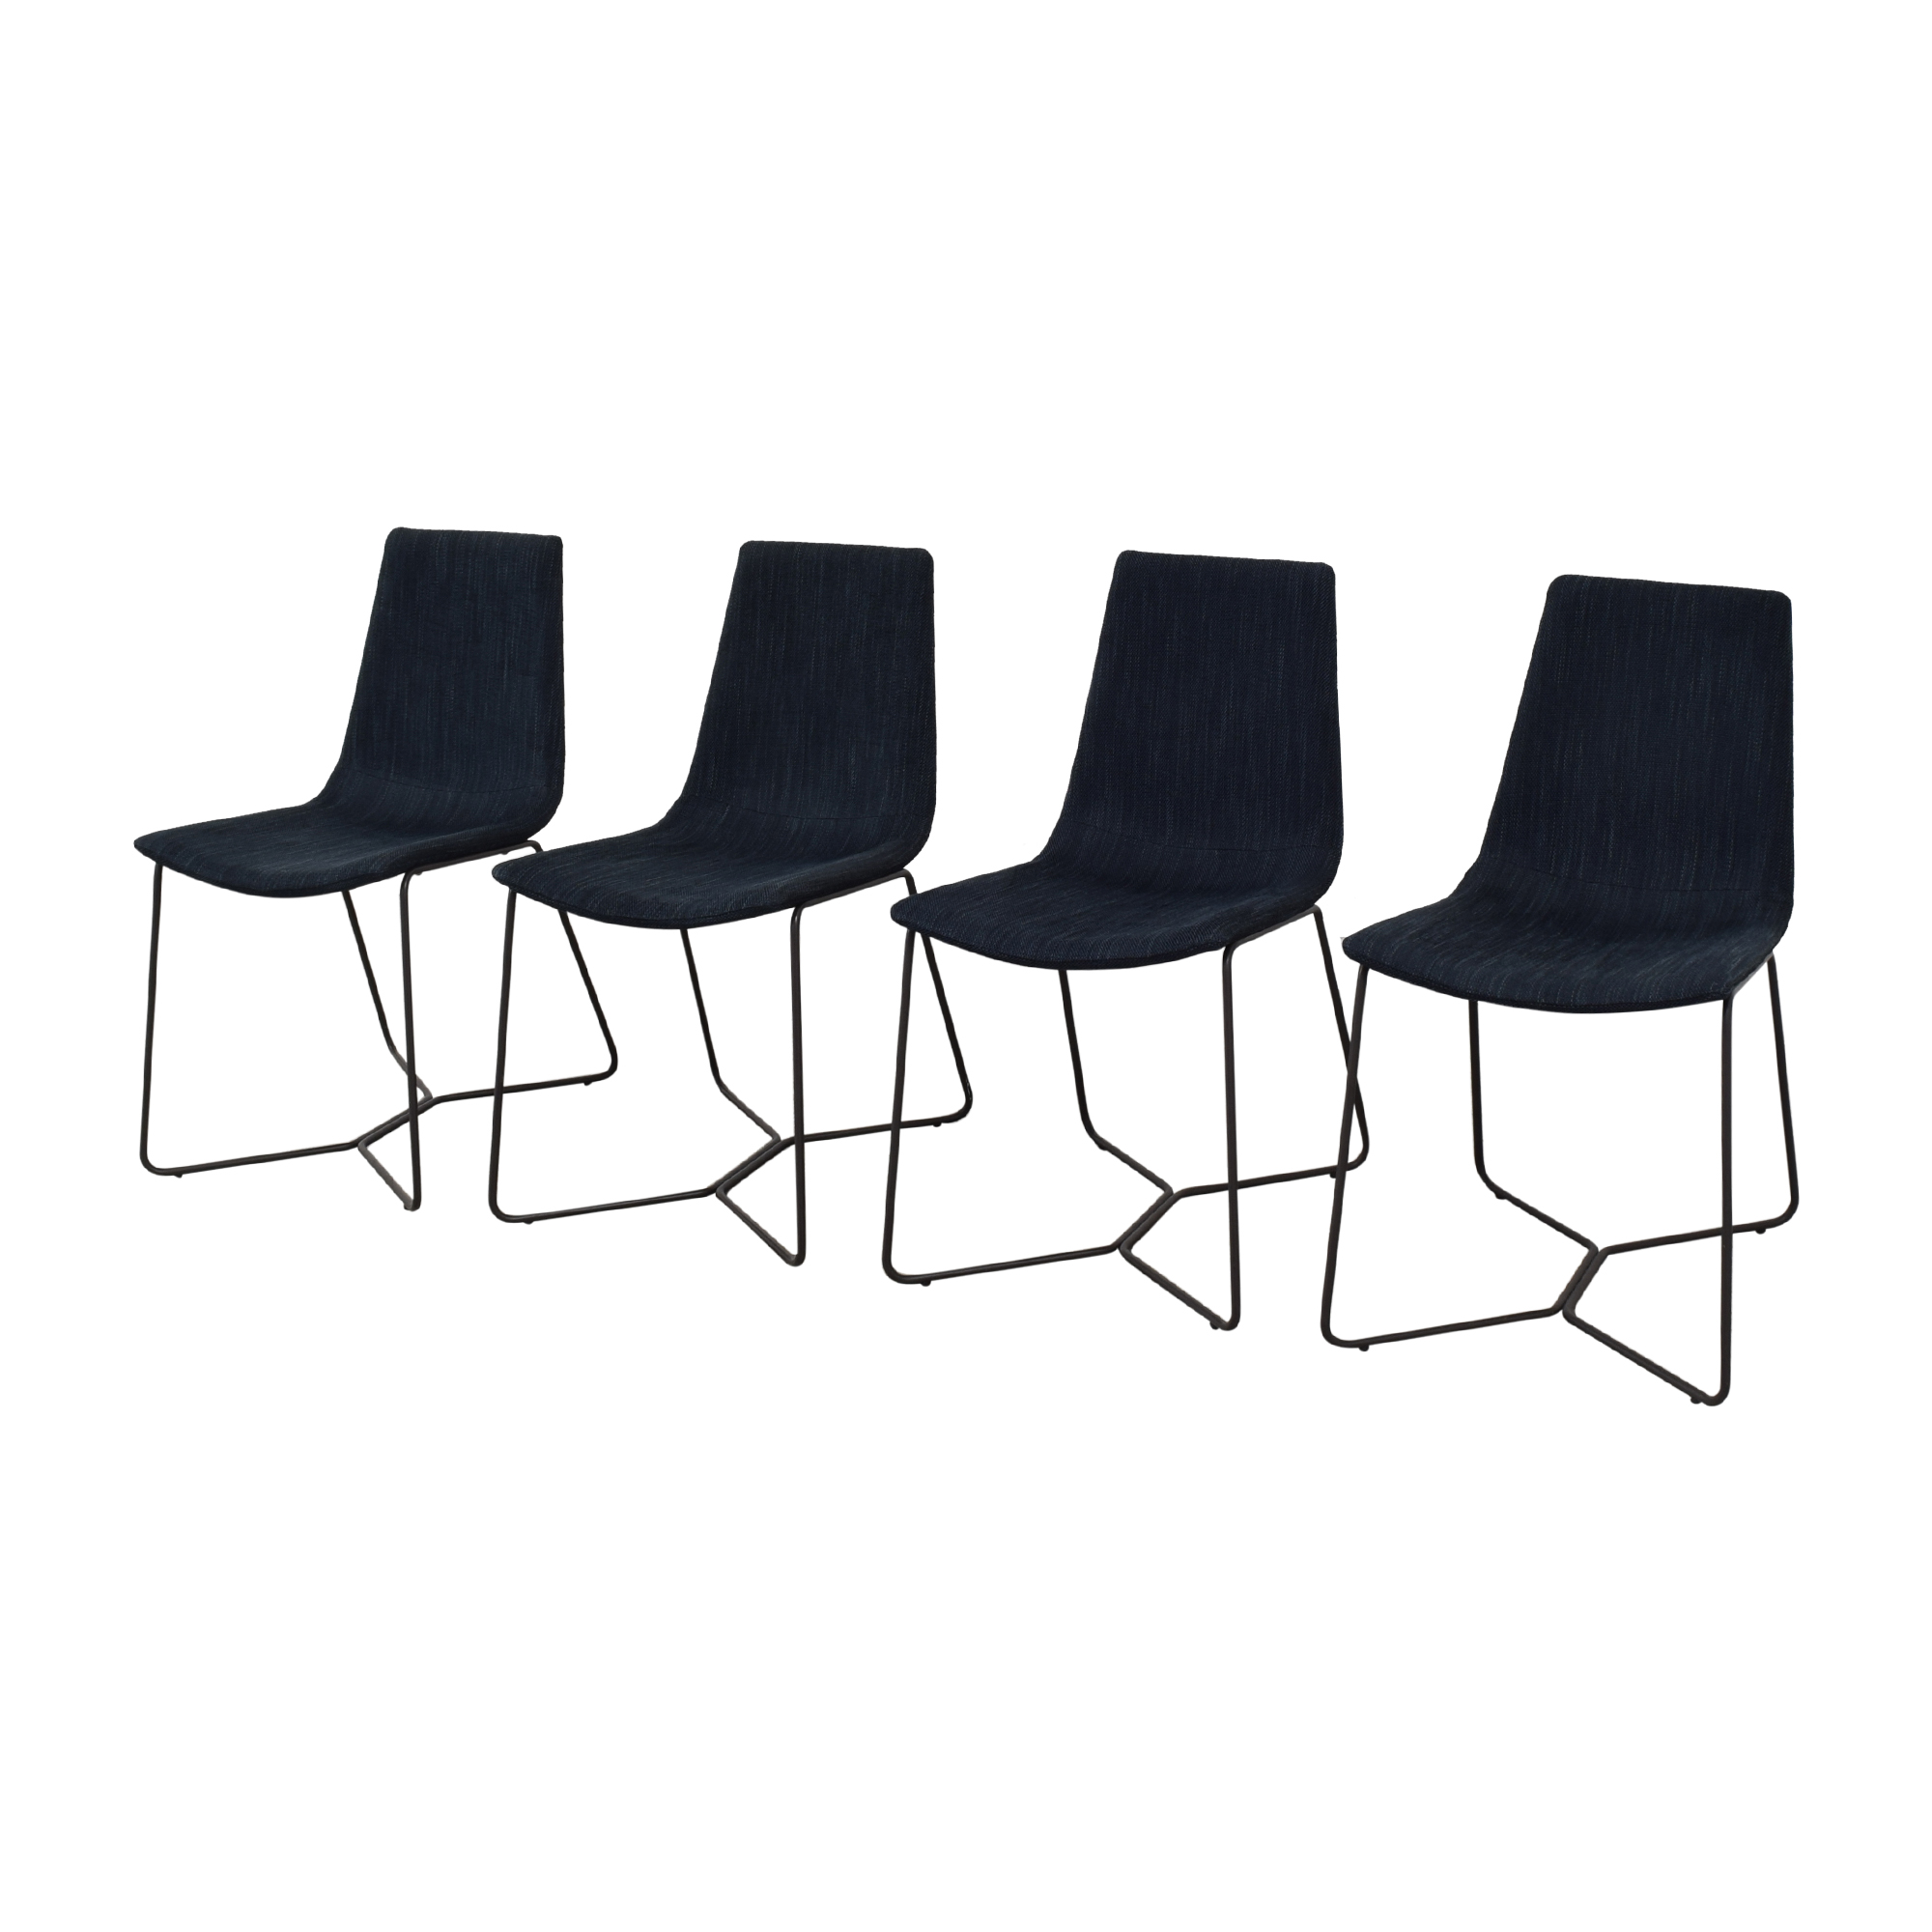 West Elm West Elm Slope Upholstered Dining Chairs Dining Chairs